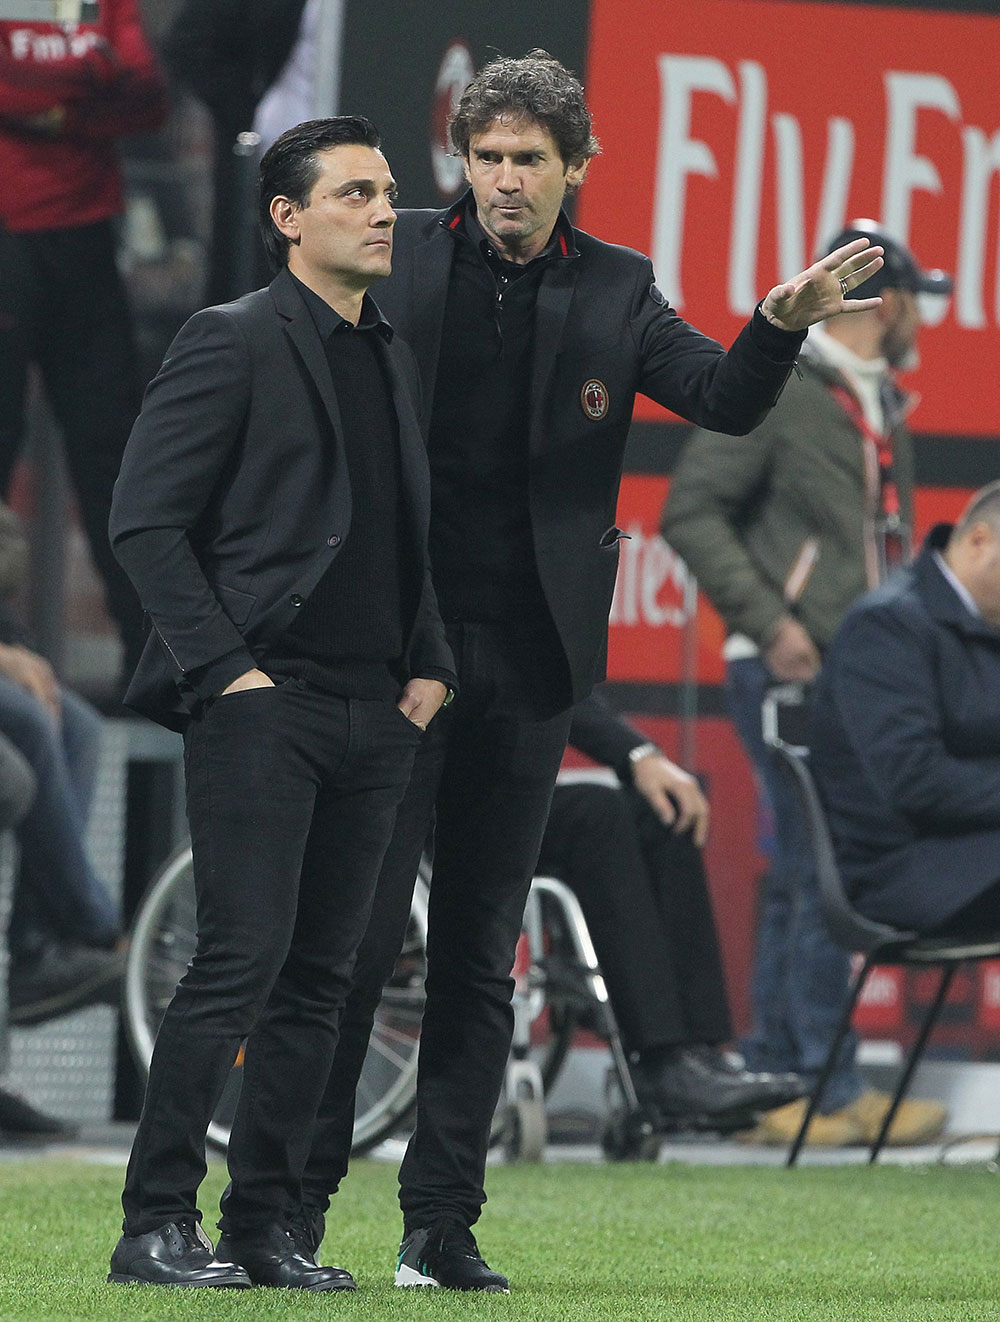 Vincenzo Montella and Daniele Russo  during  Milan-Juventus at Stadio San Siro on October 28, 2017. (Photo by Marco Luzzani/Getty Images)